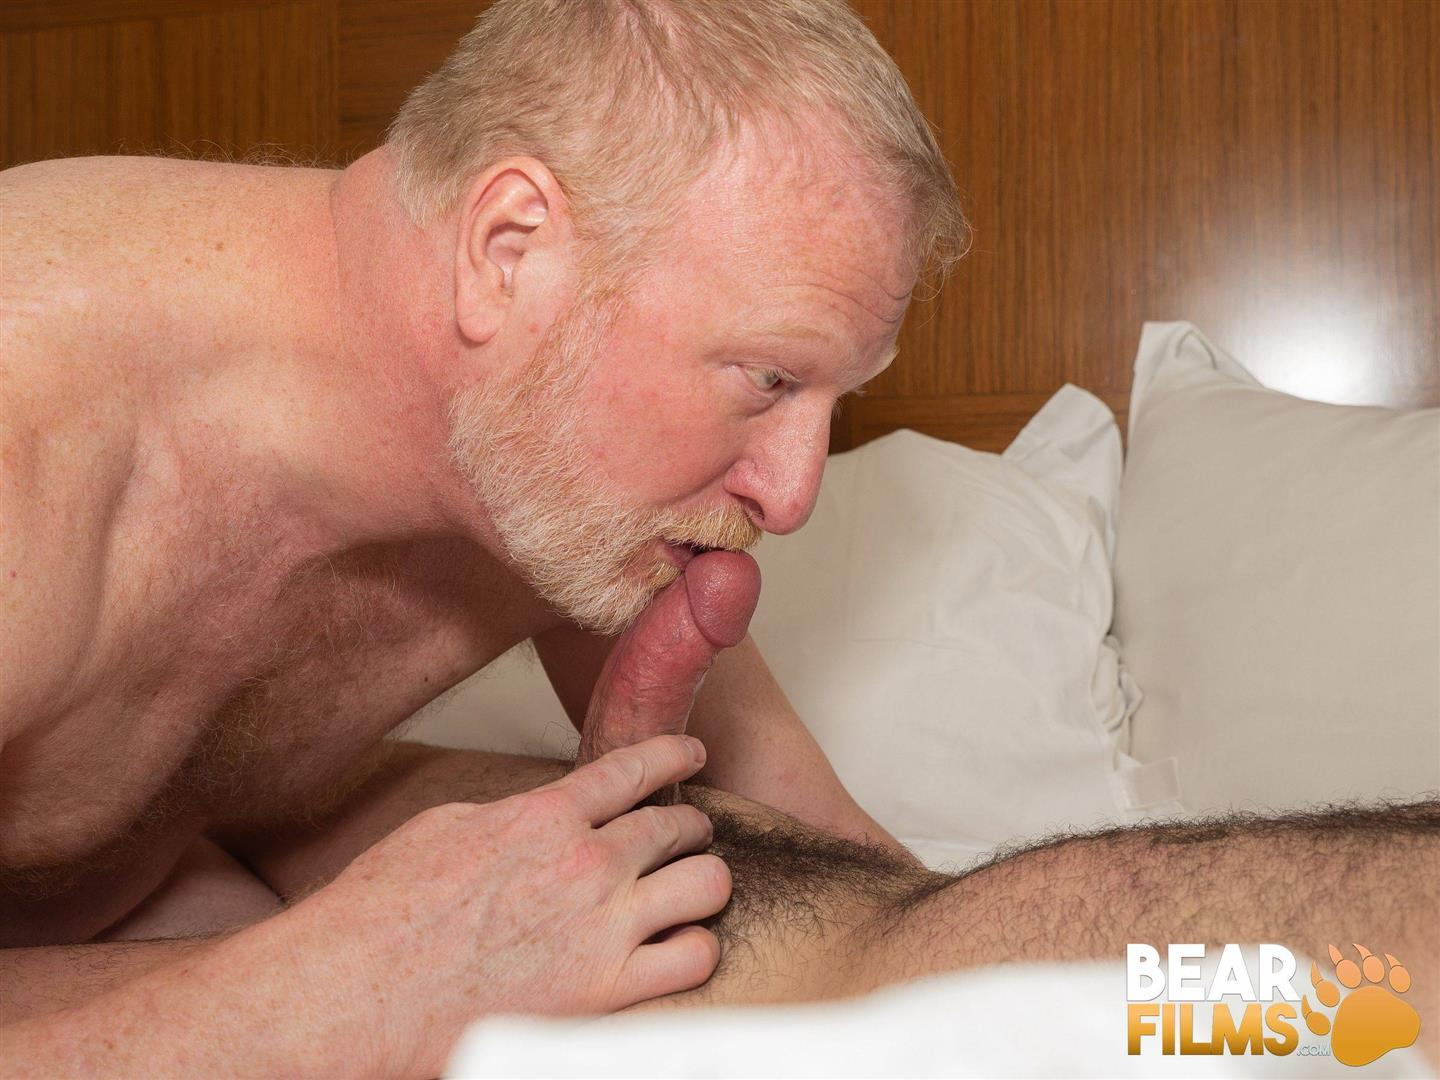 Bear-Films-Rusty-McMann-and-John-Pucker-Daddy-Bareback-Fucking-Younger-Cub-Video-30 Ginger Daddy Bareback Fucking A Hairy Chubby Cub